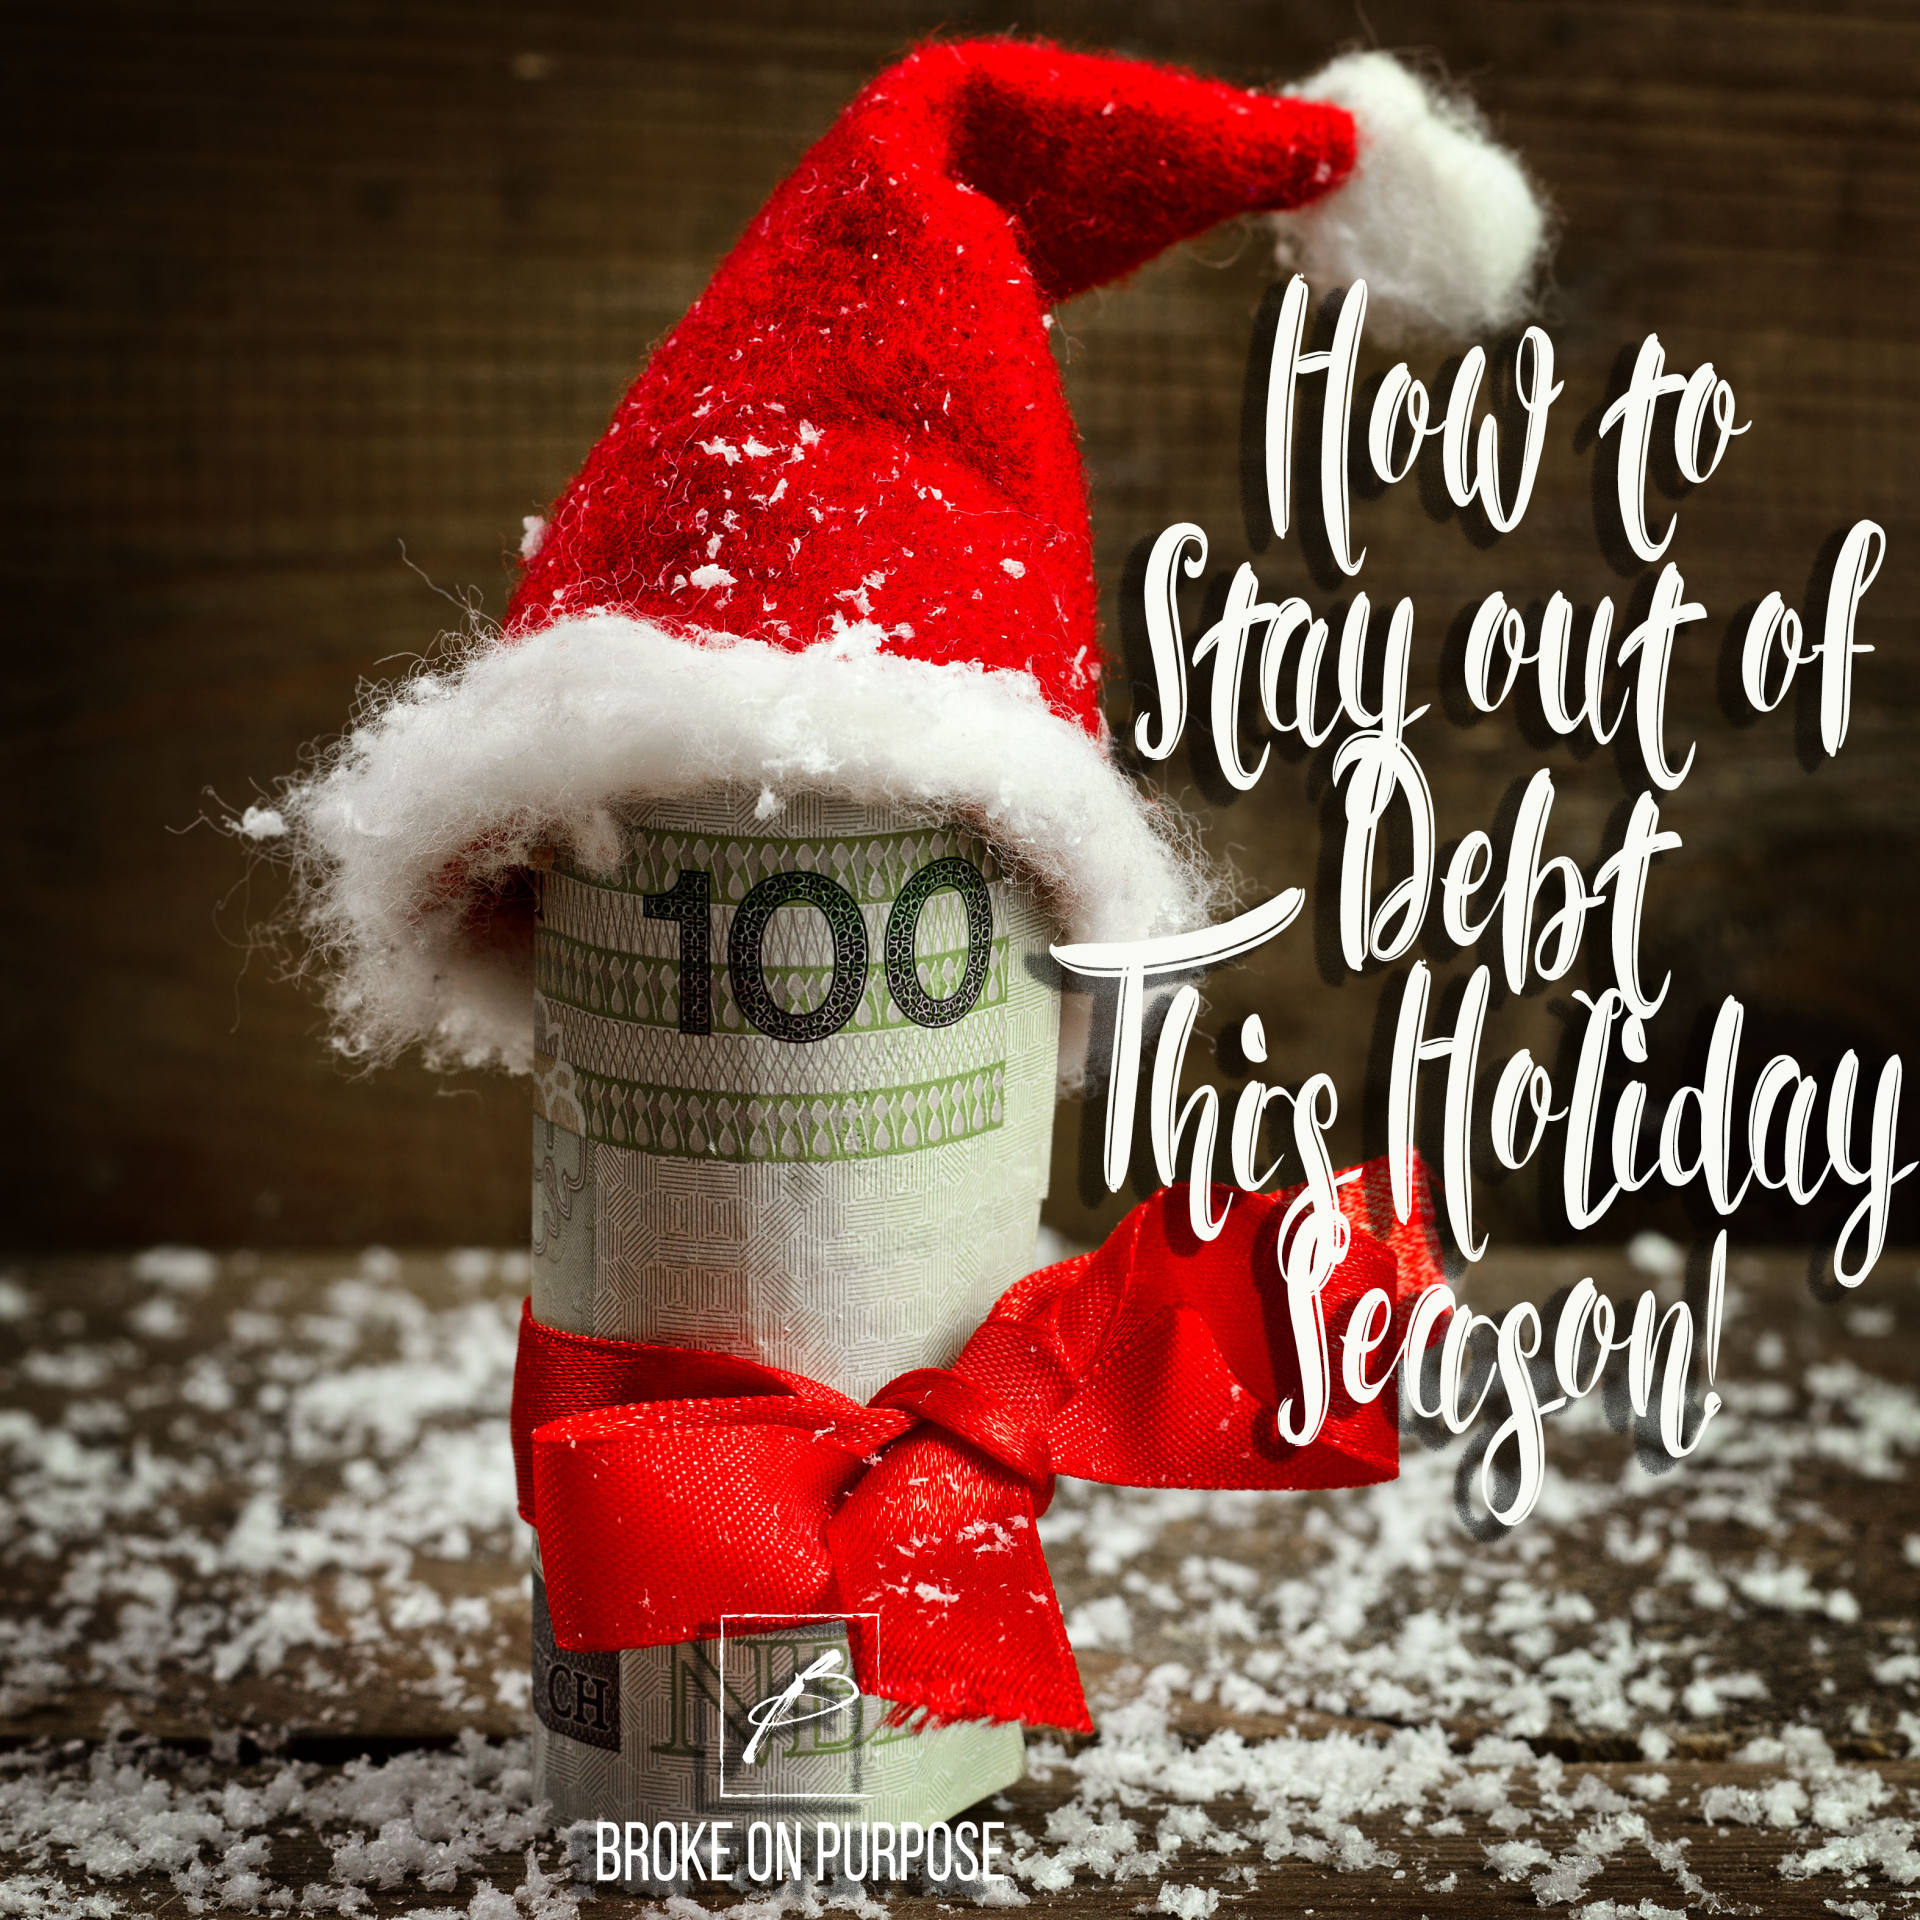 How to Stay out of debt this holiday season. |www.beingmelody.com| Broke on Purpose| @BeingMelody